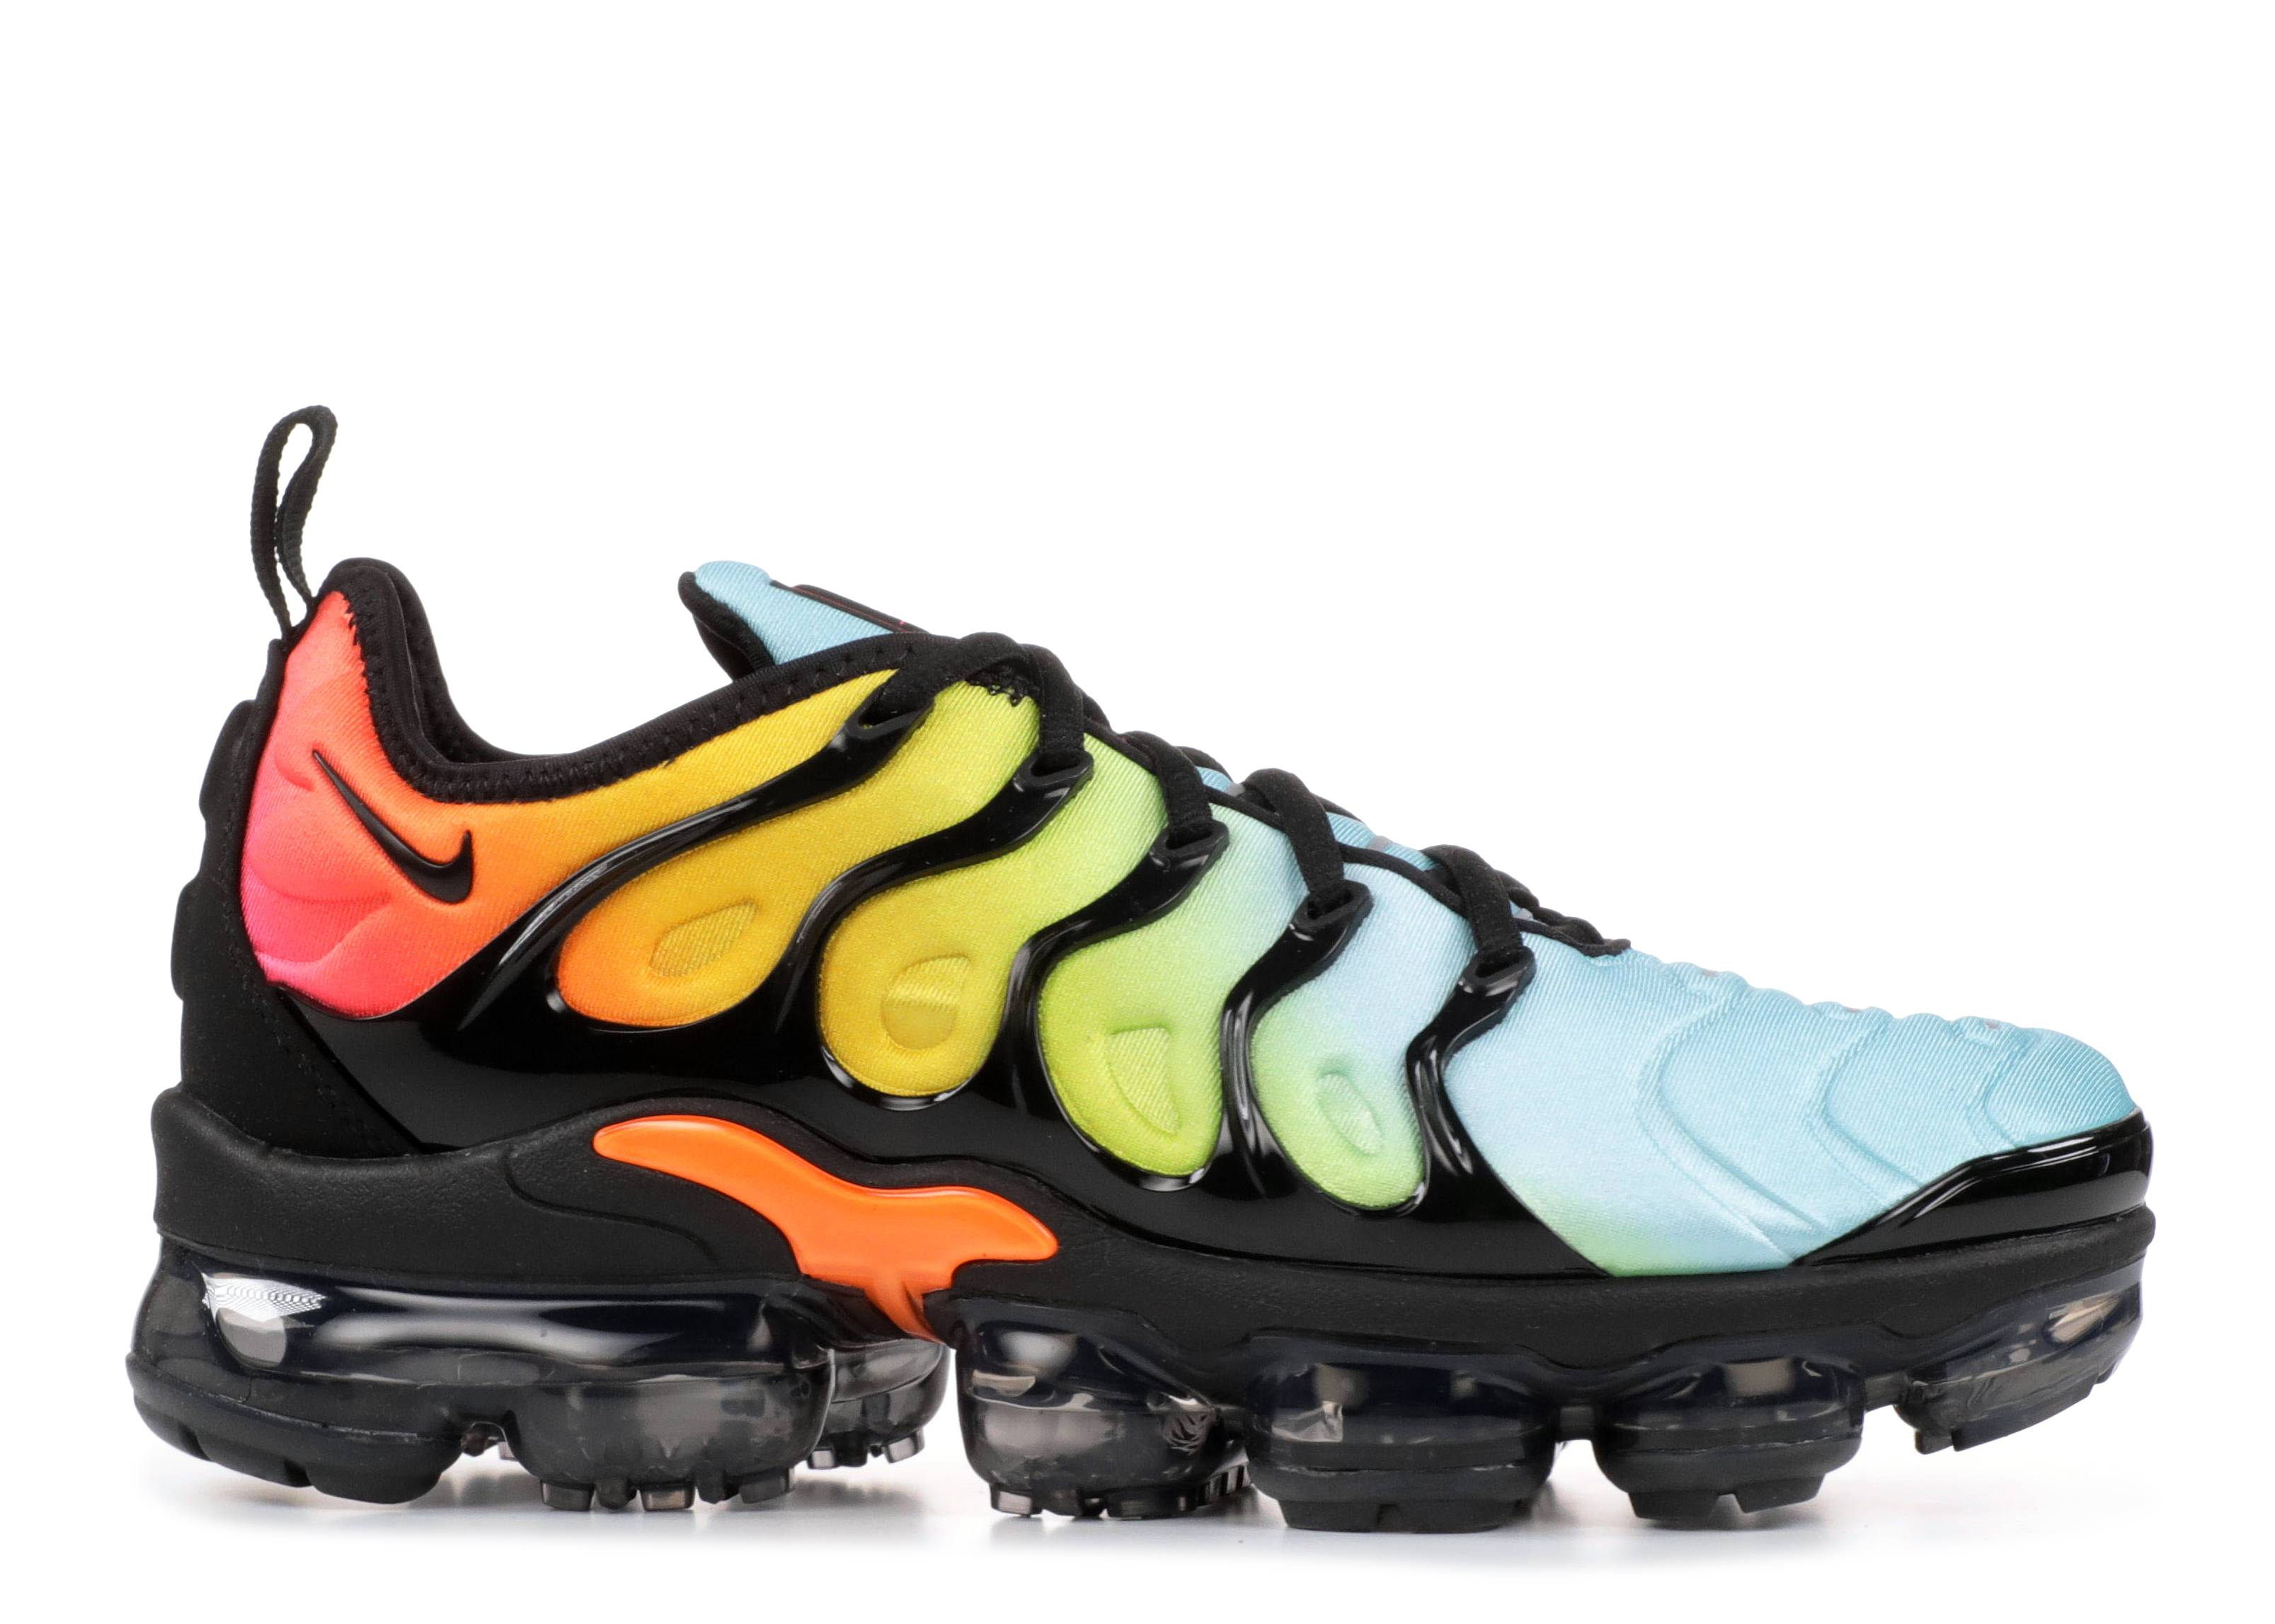 w air vapormax plus nike ao4550 002 black black beached aqua flight club. Black Bedroom Furniture Sets. Home Design Ideas